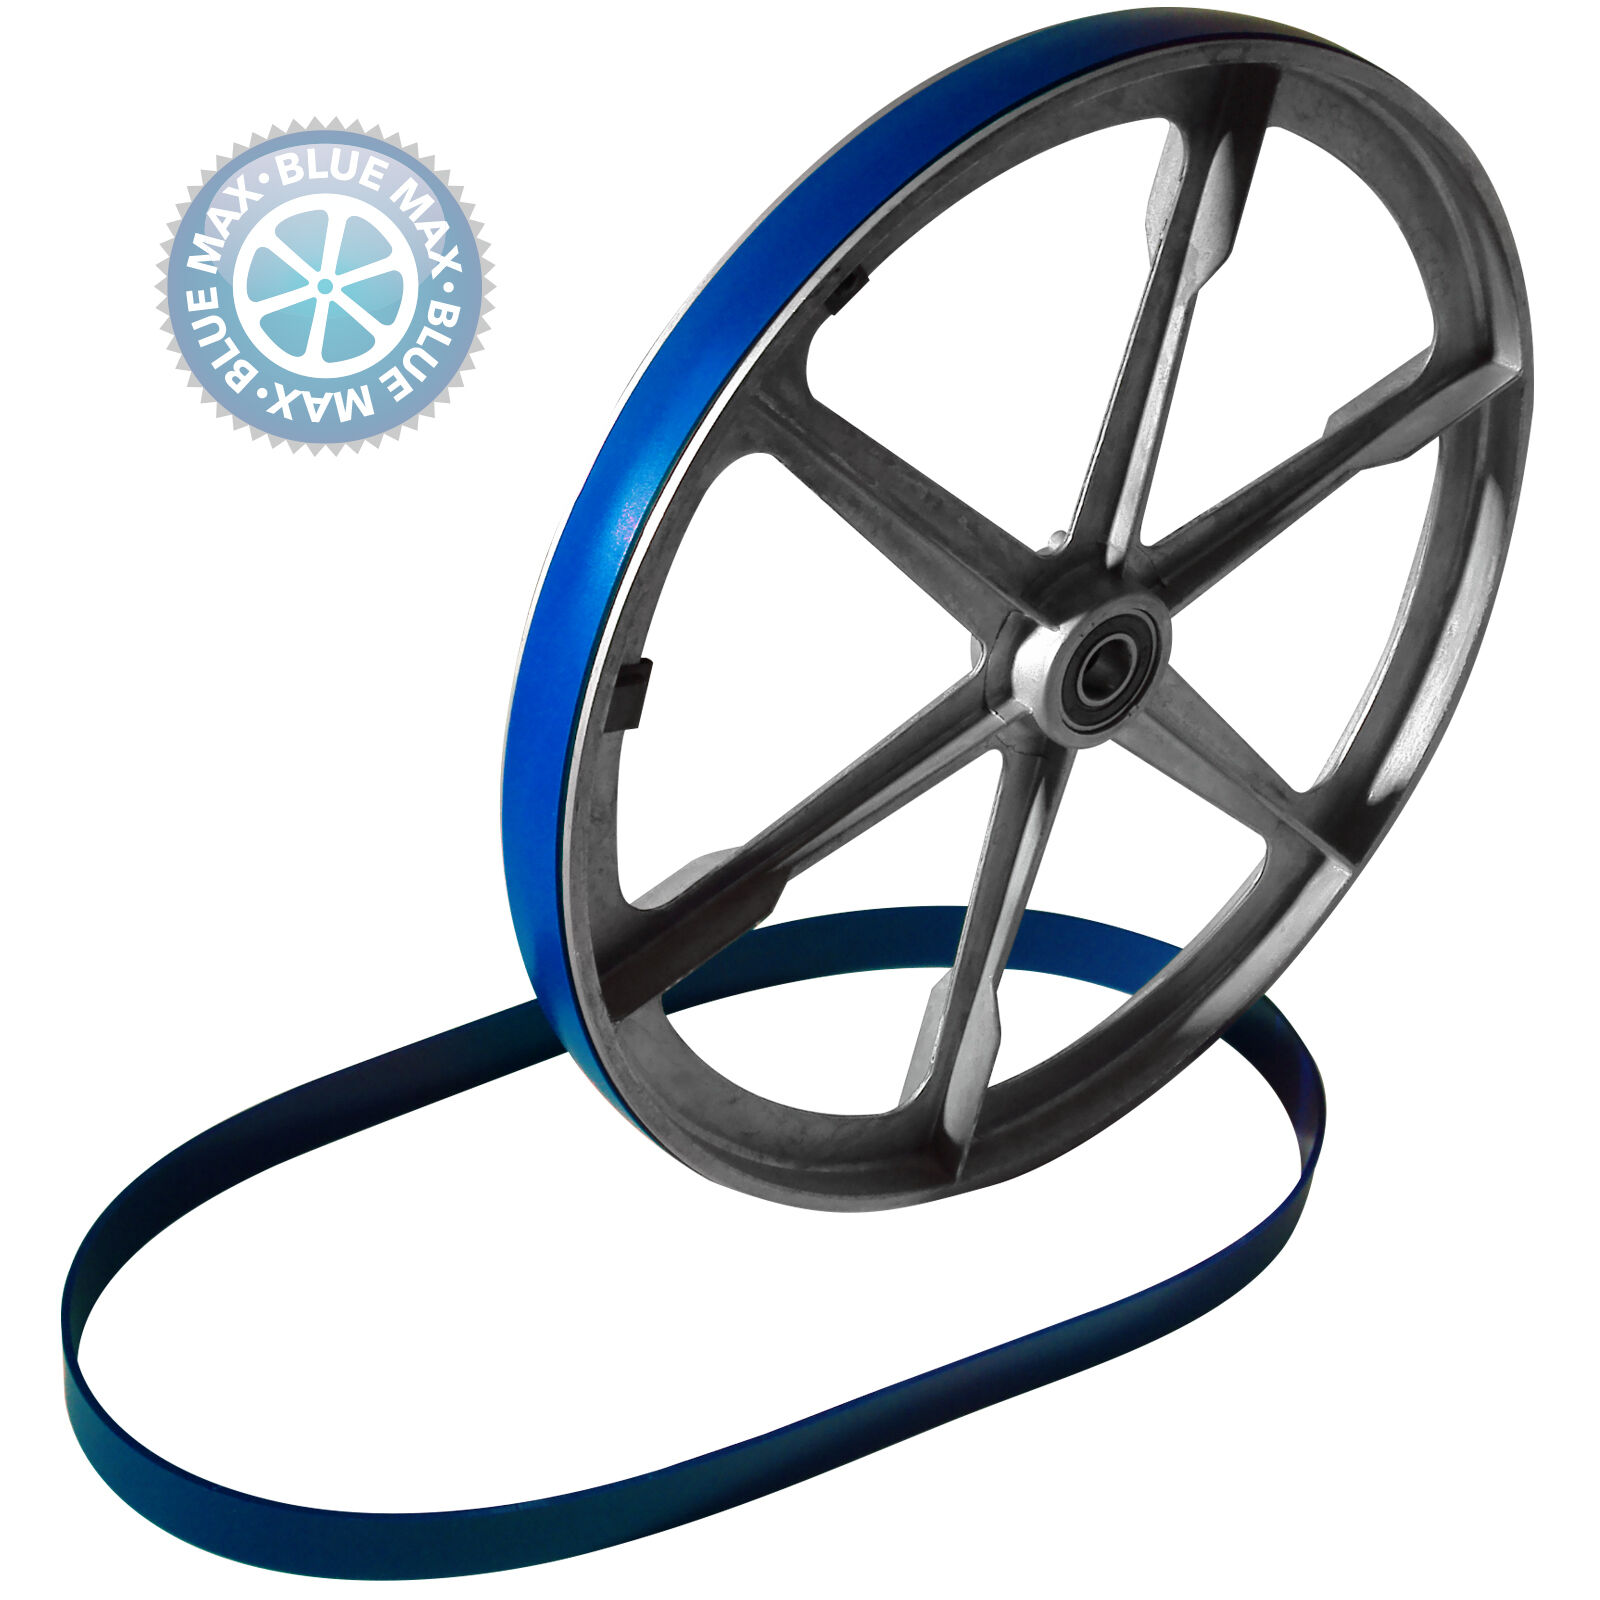 Blau MAX HEAVY DUTY URETHANE BAND SAW TIRES FOR GRIZZLY MODEL G0514 BANDSAW 19